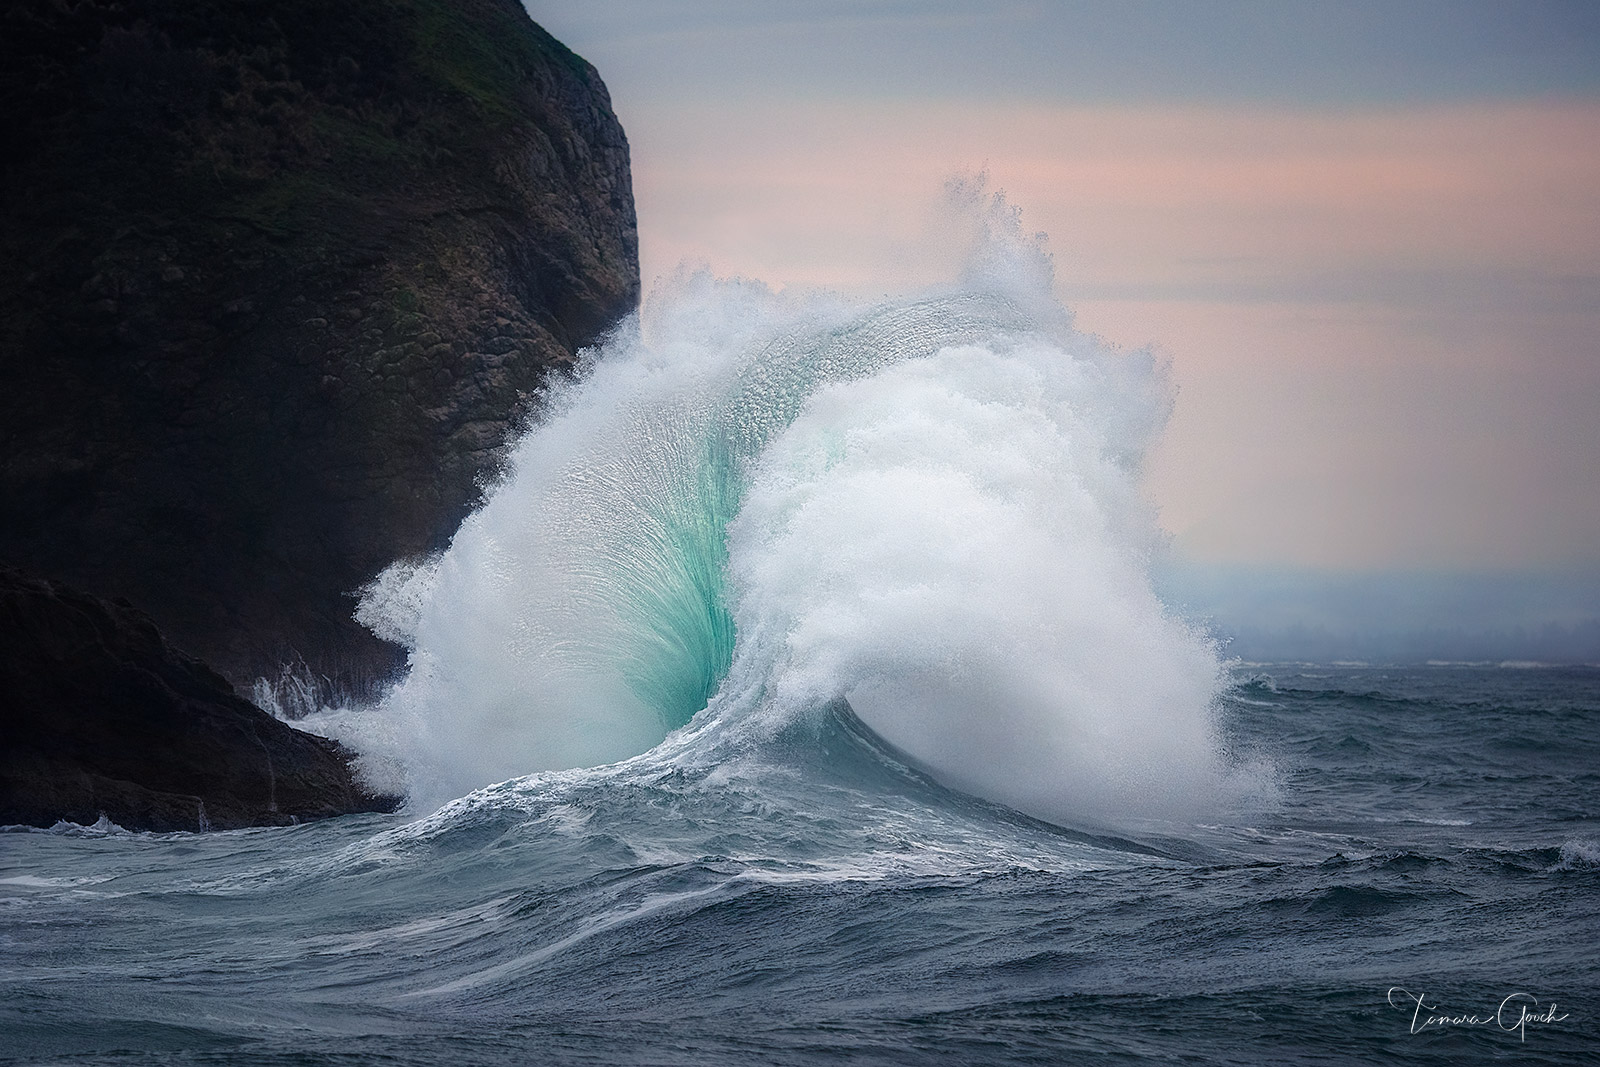 Limited Edition Print of 50 Breaker Wave photographed during King Tides at Cape Disappointment Washington.